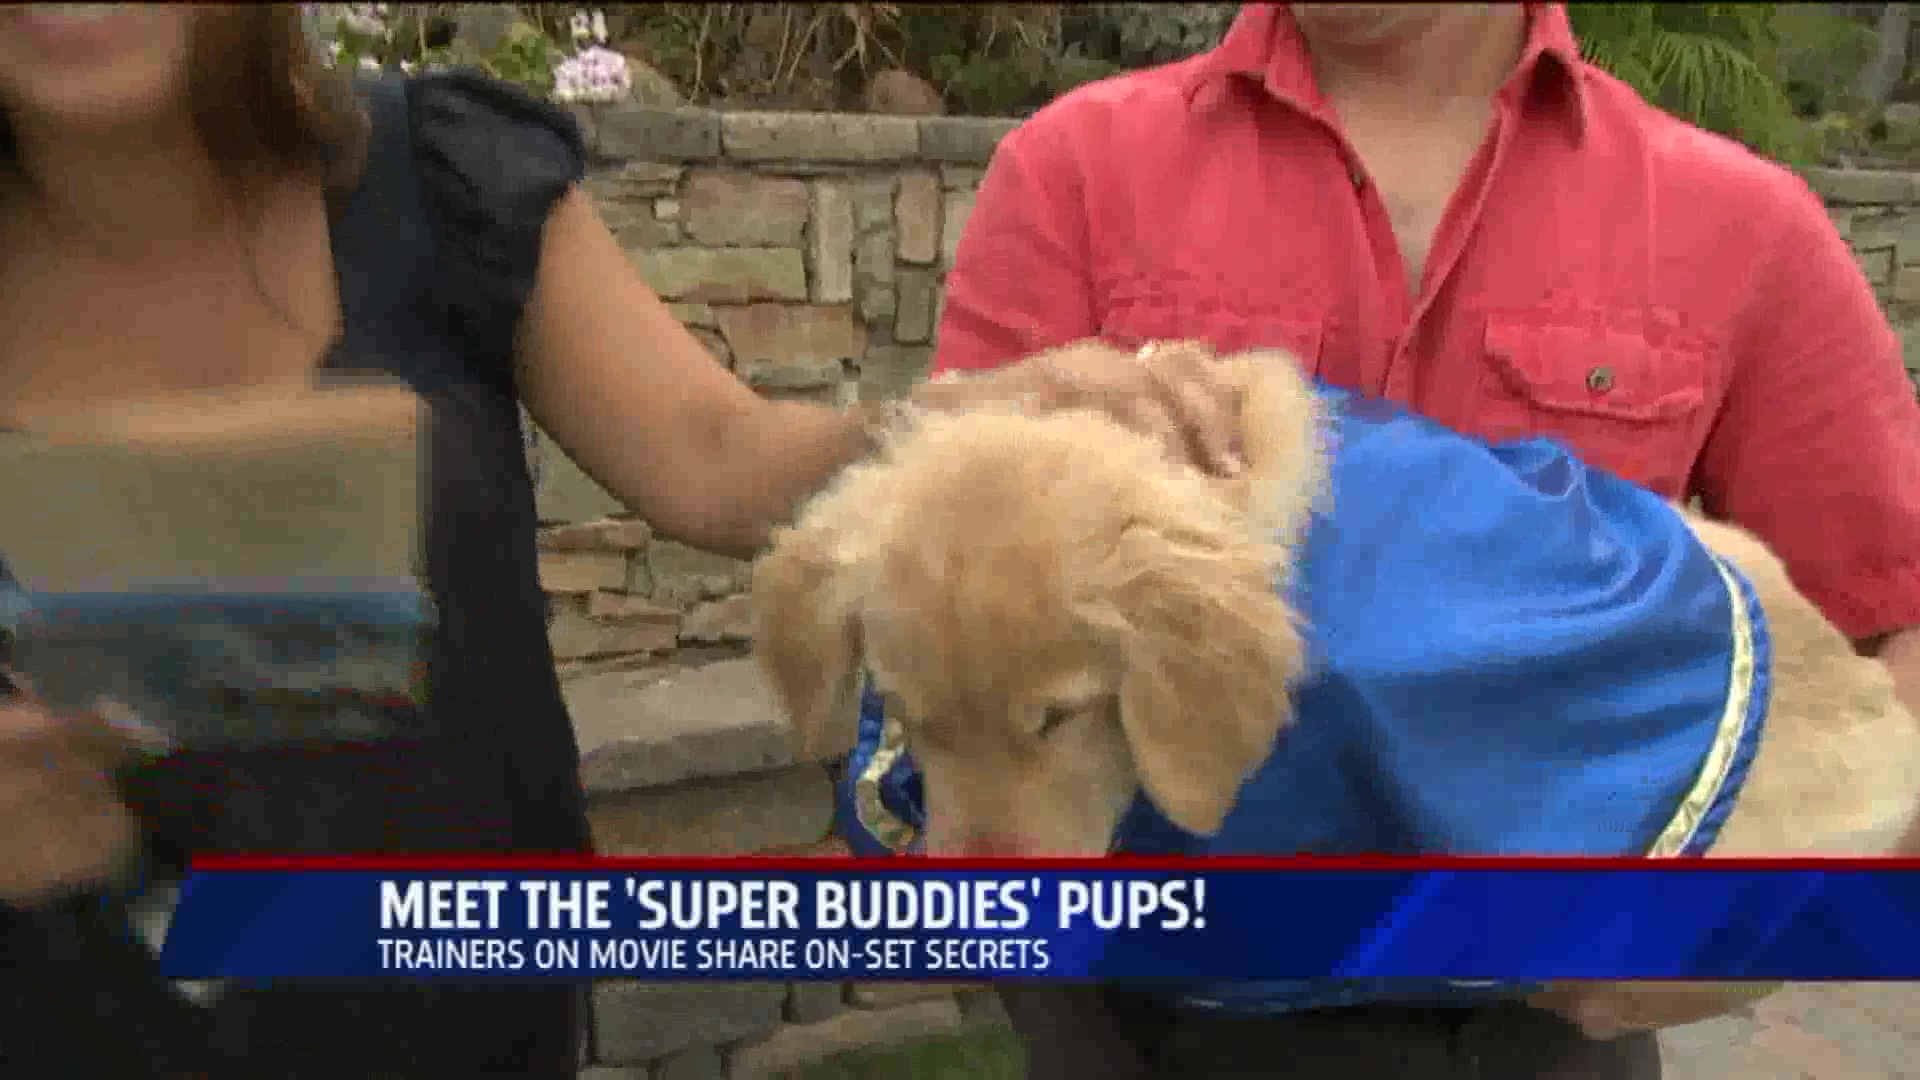 Meet The 'Super Buddies' Puppies!